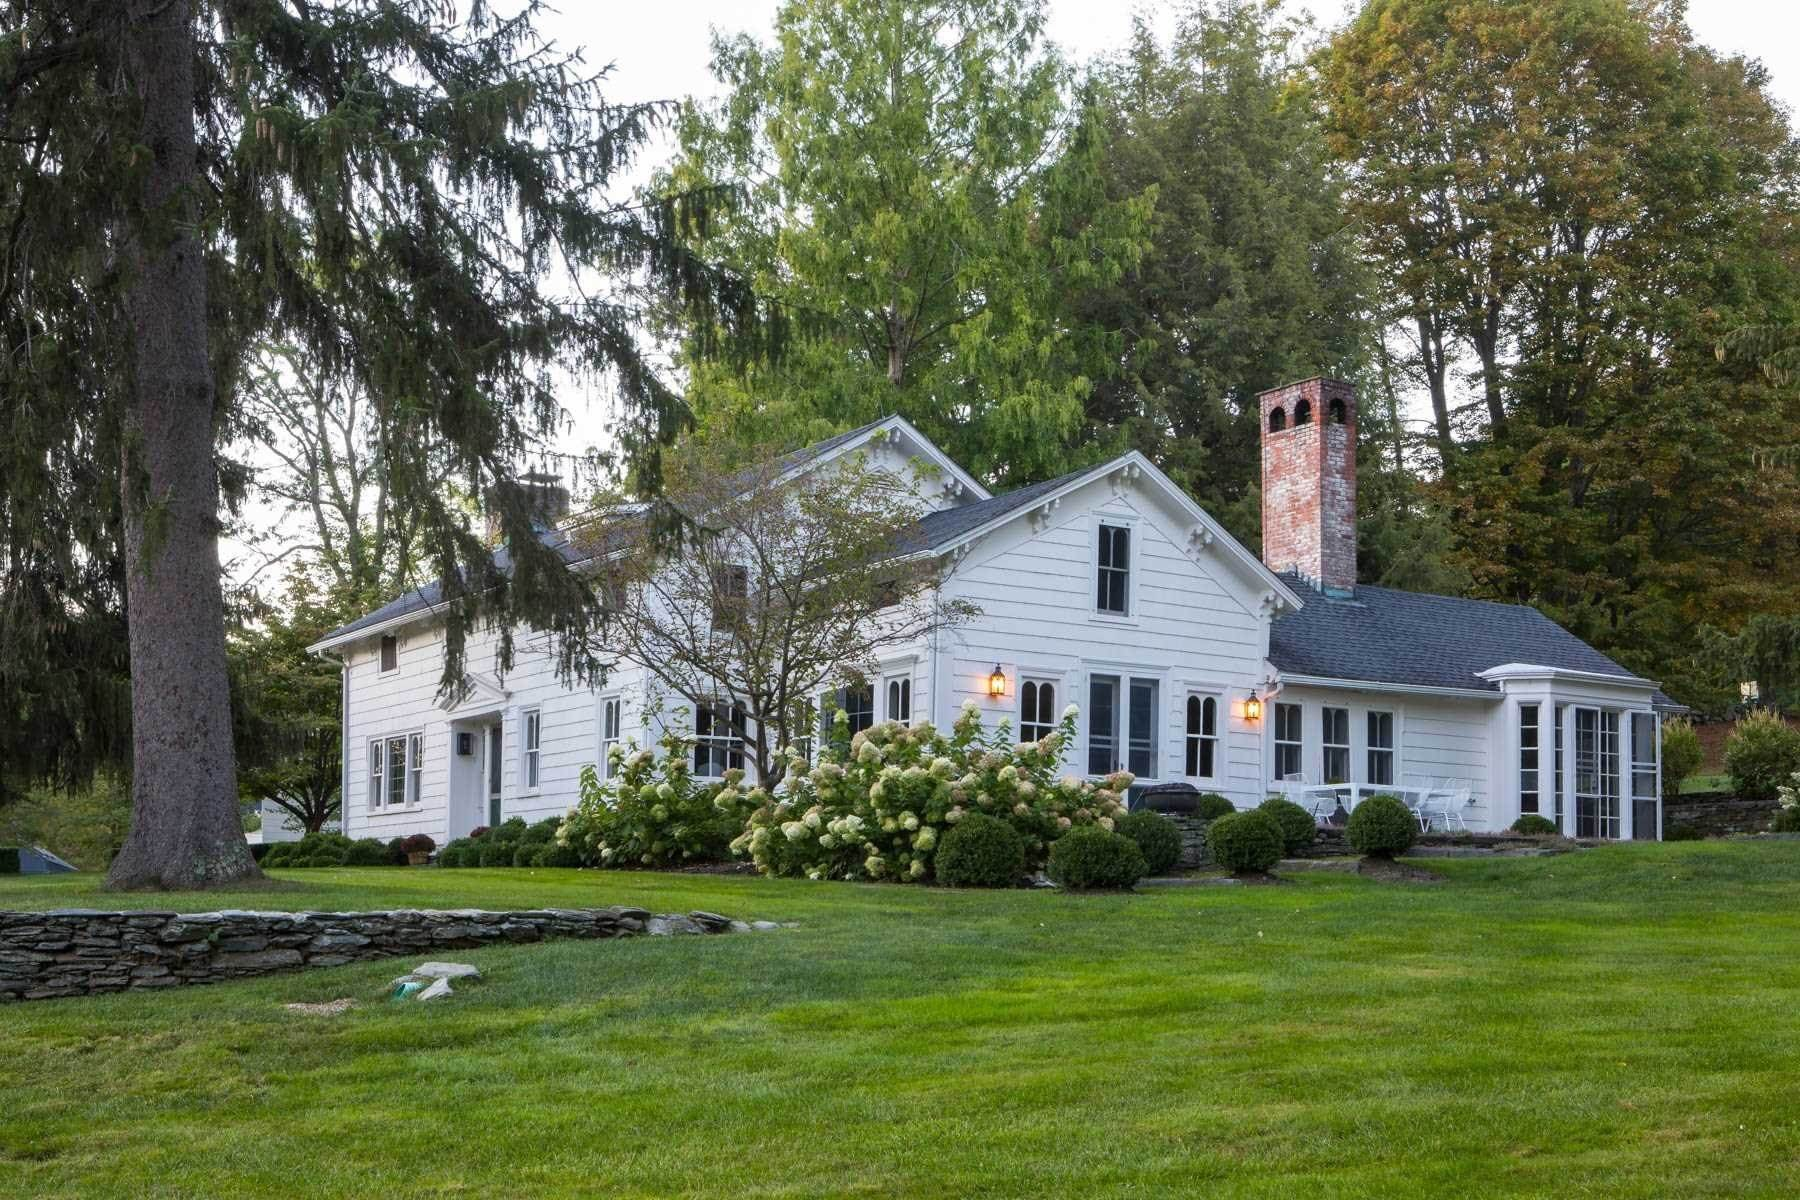 Single Family Homes for Sale at 474482 DEEP HOLLOW ROAD Washington, New York 12545 United States